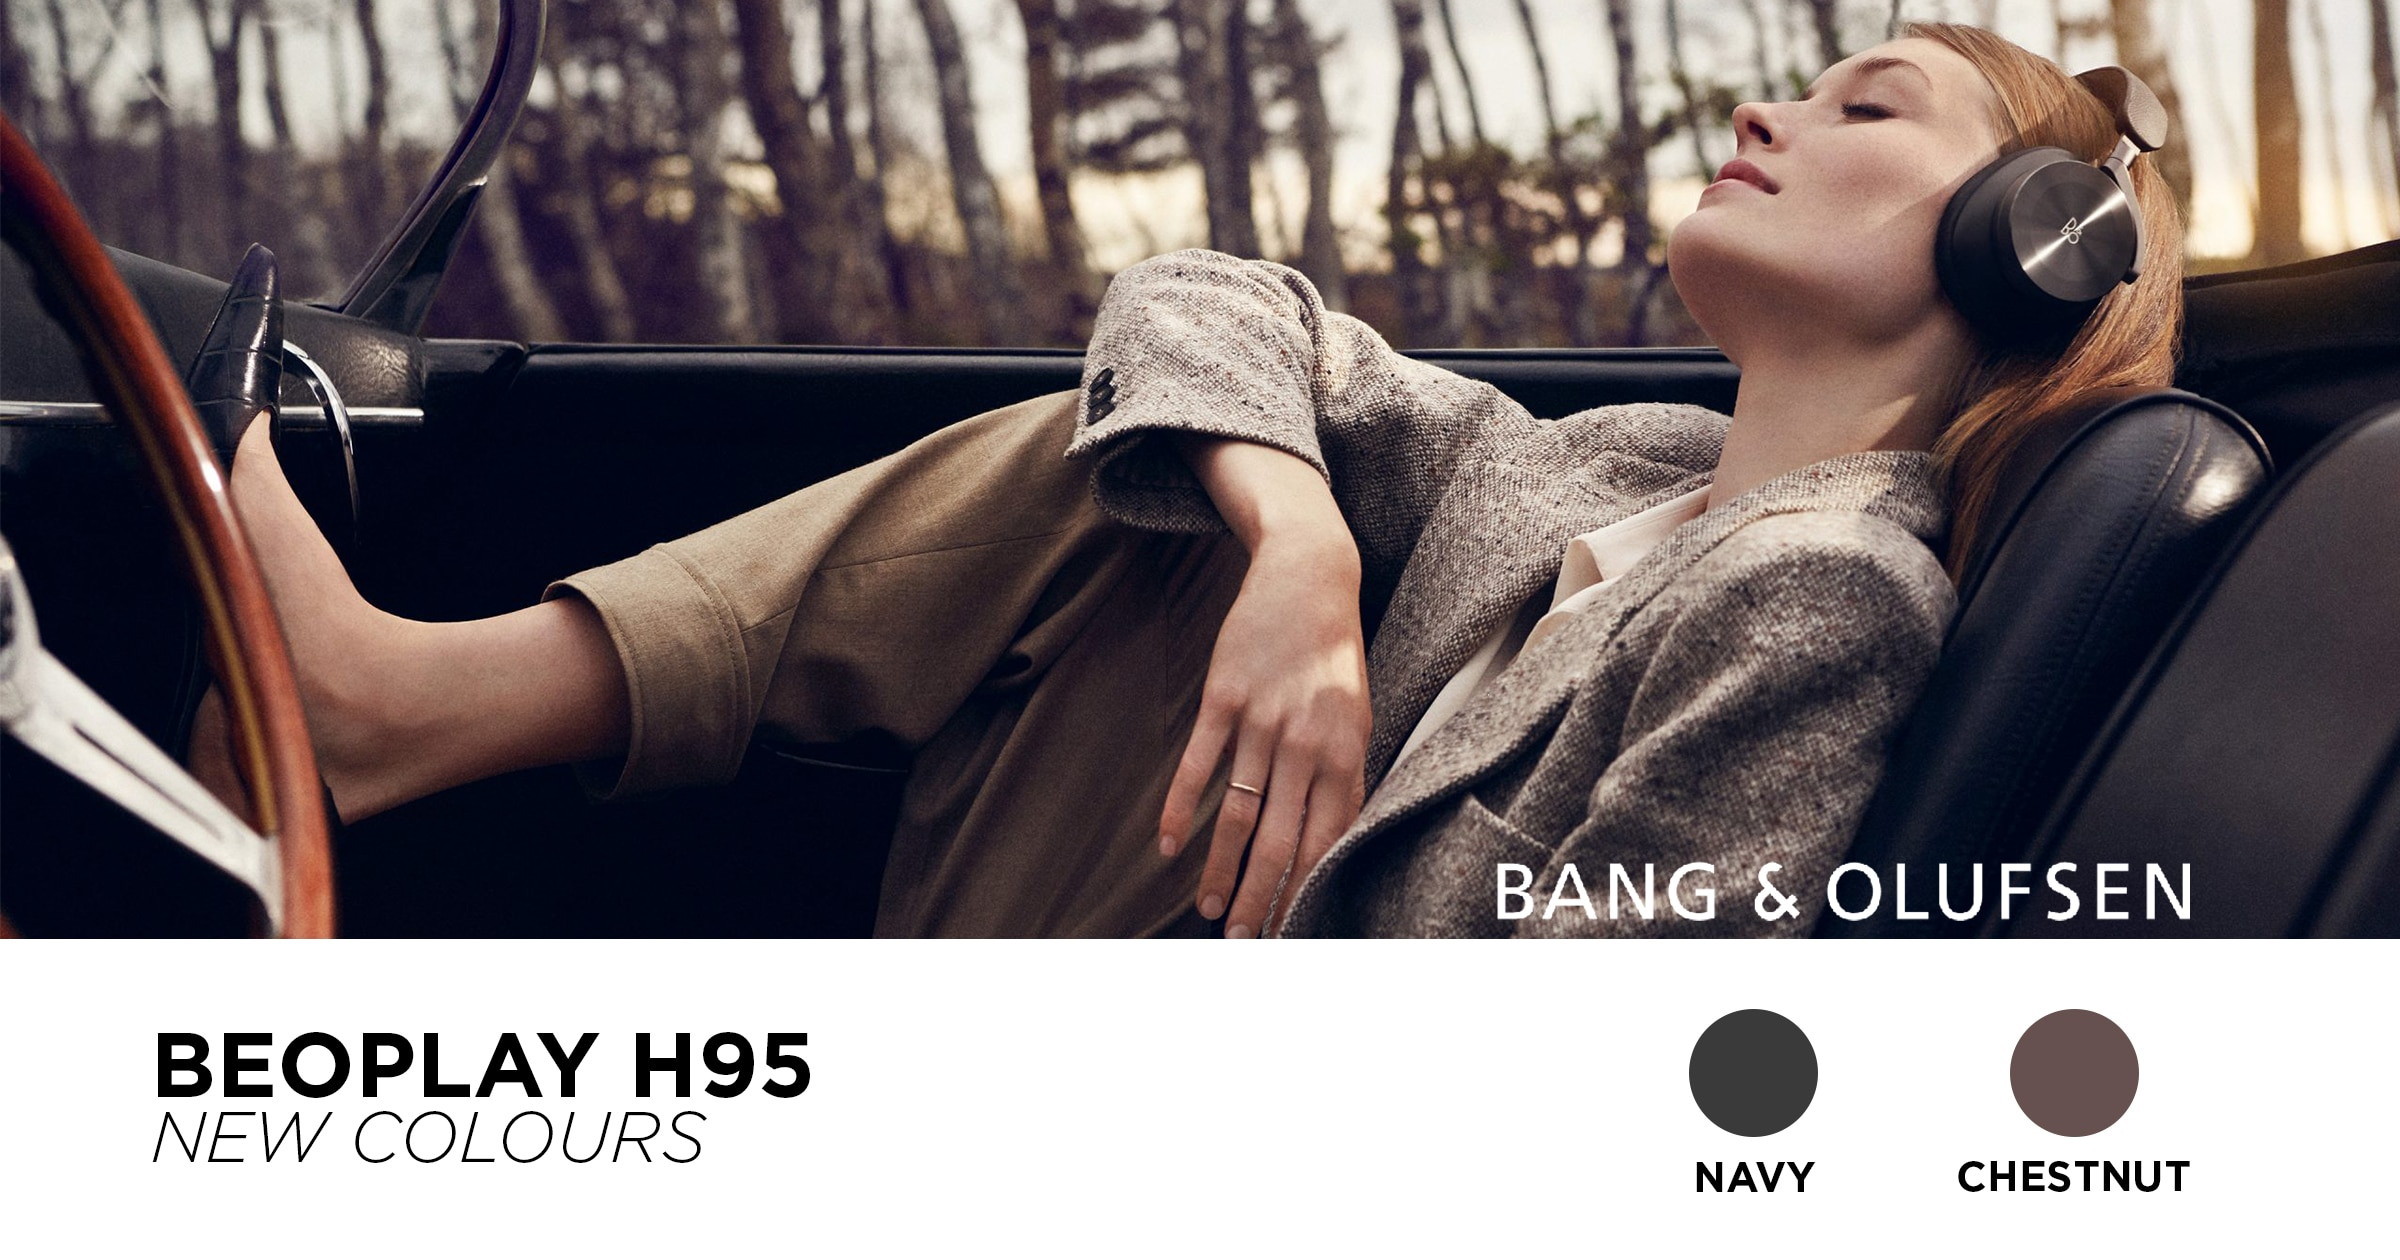 BeoPlay H95 Navy Chestnut New Colors